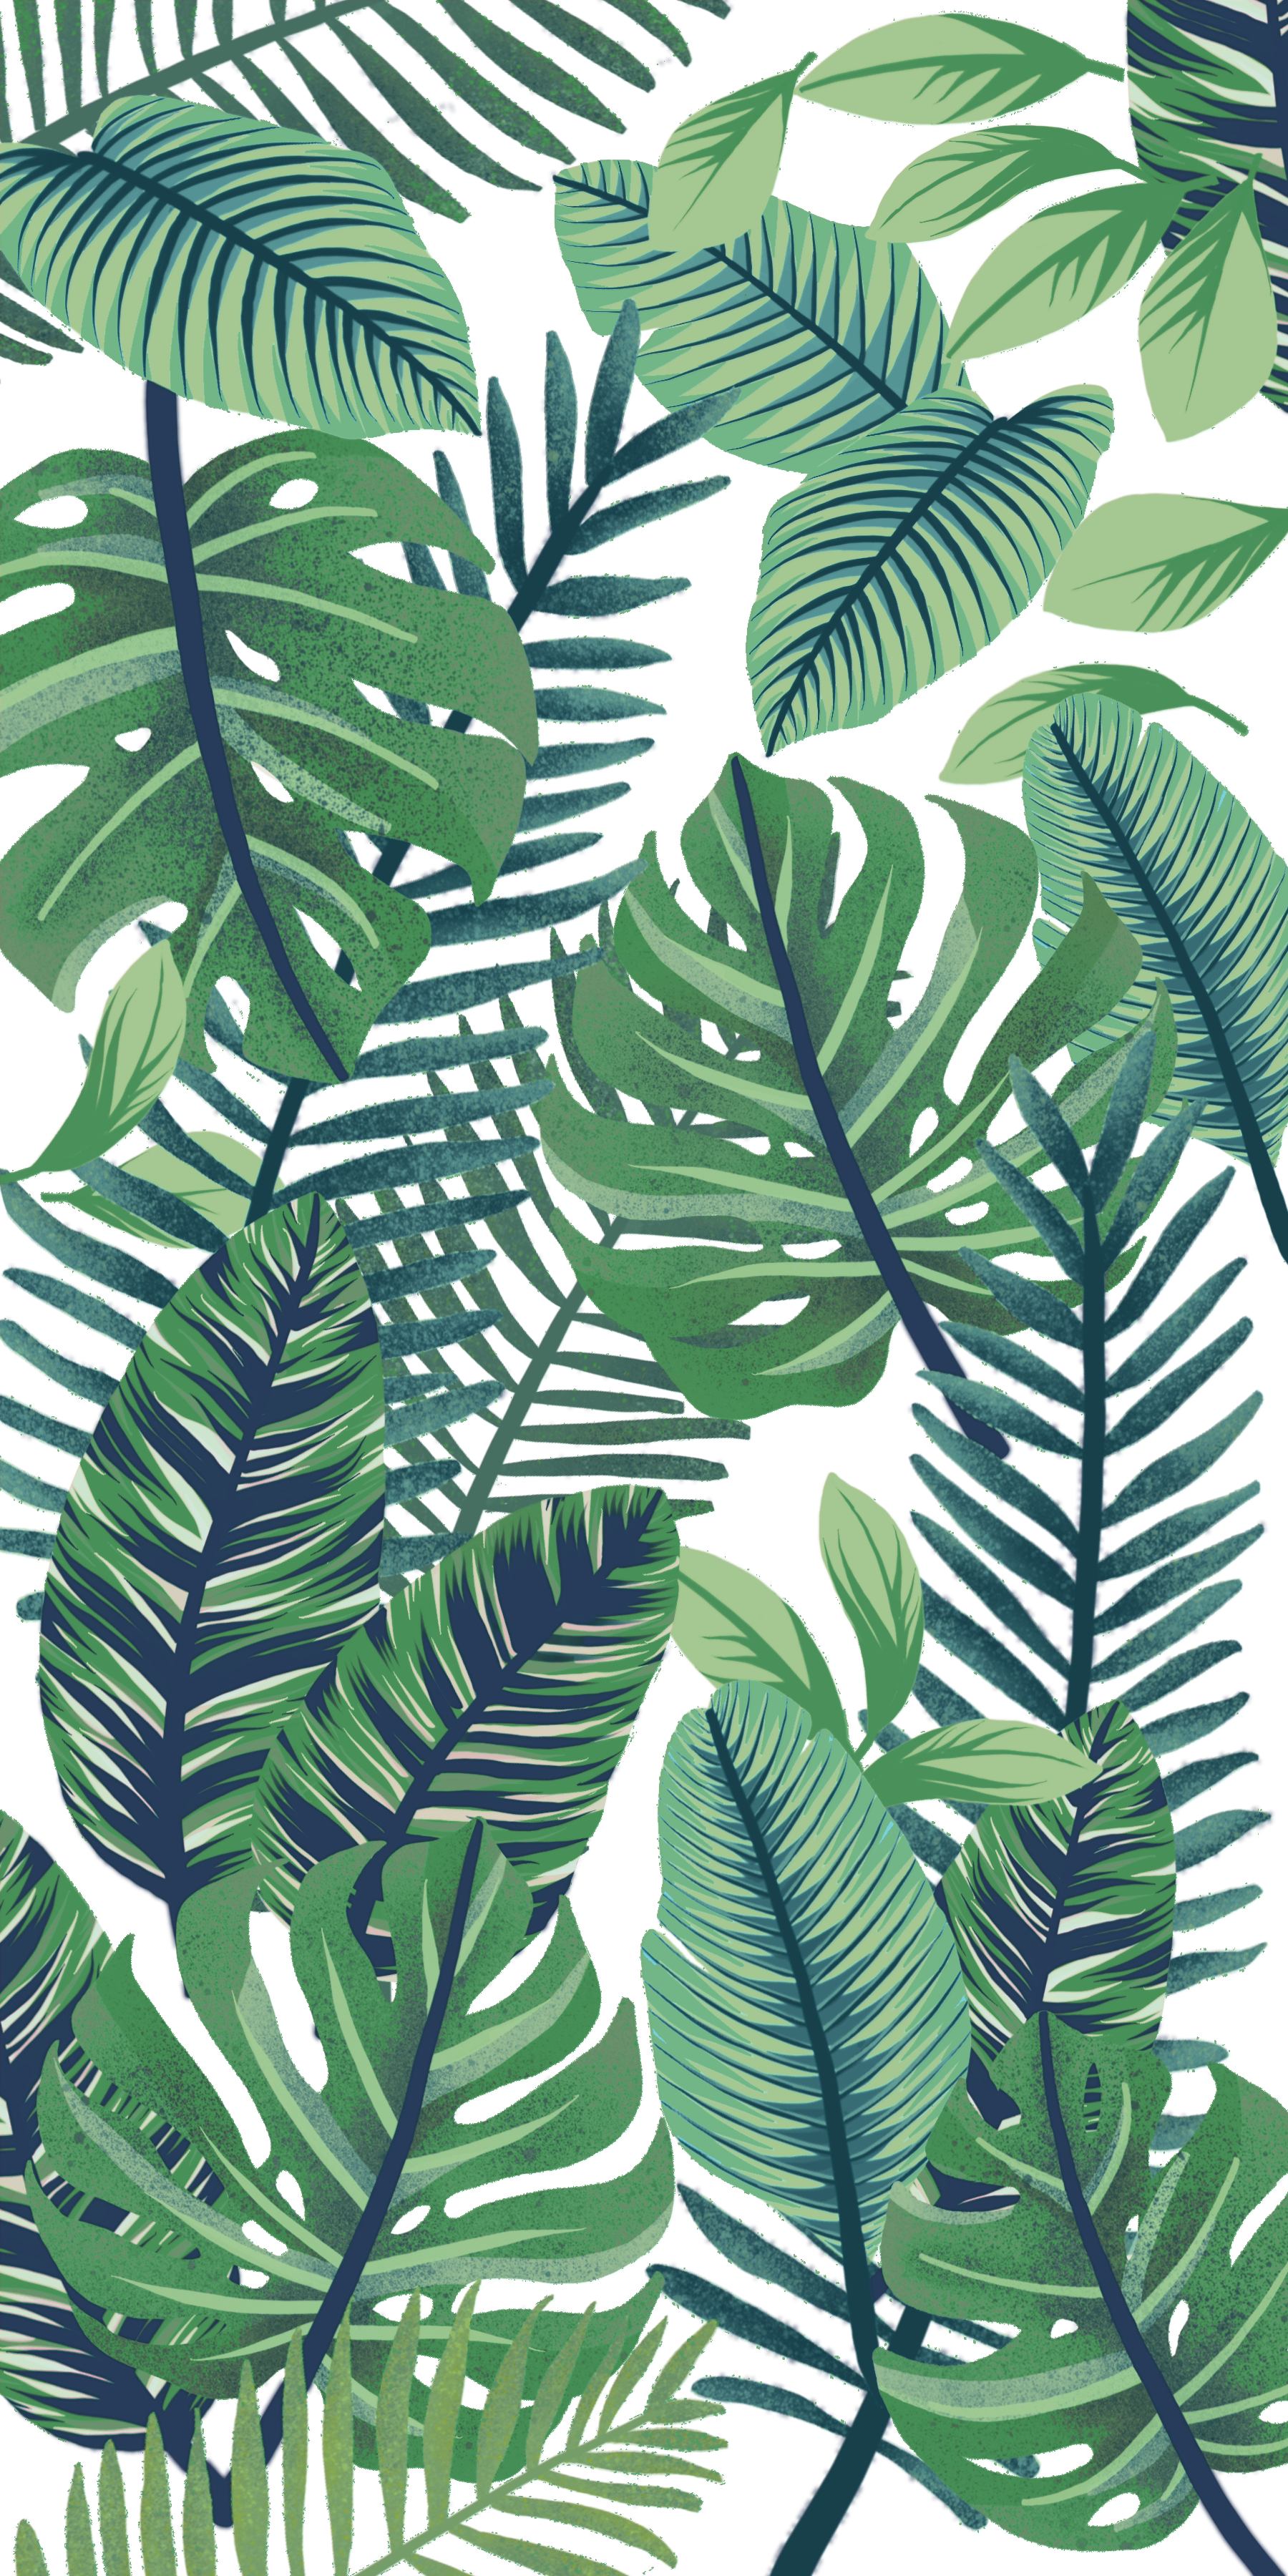 Green Jungle Casetify Iphone Art Design Foliage Floral Plant Wallpaper Leaves Wallpaper Iphone Floral Wallpaper